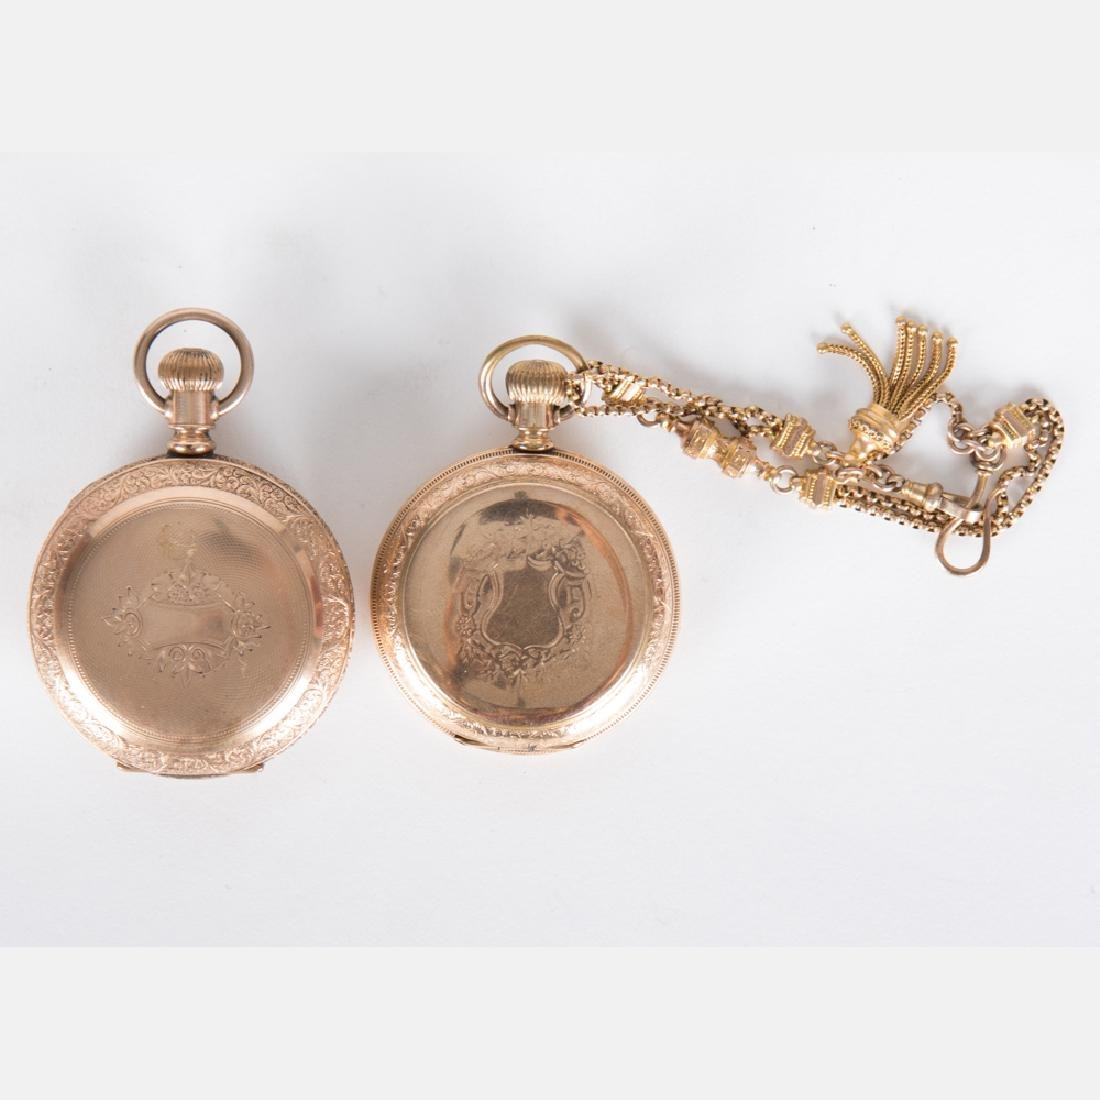 Two Elgin Gold Plated Hunter's Case Pocket Watches,